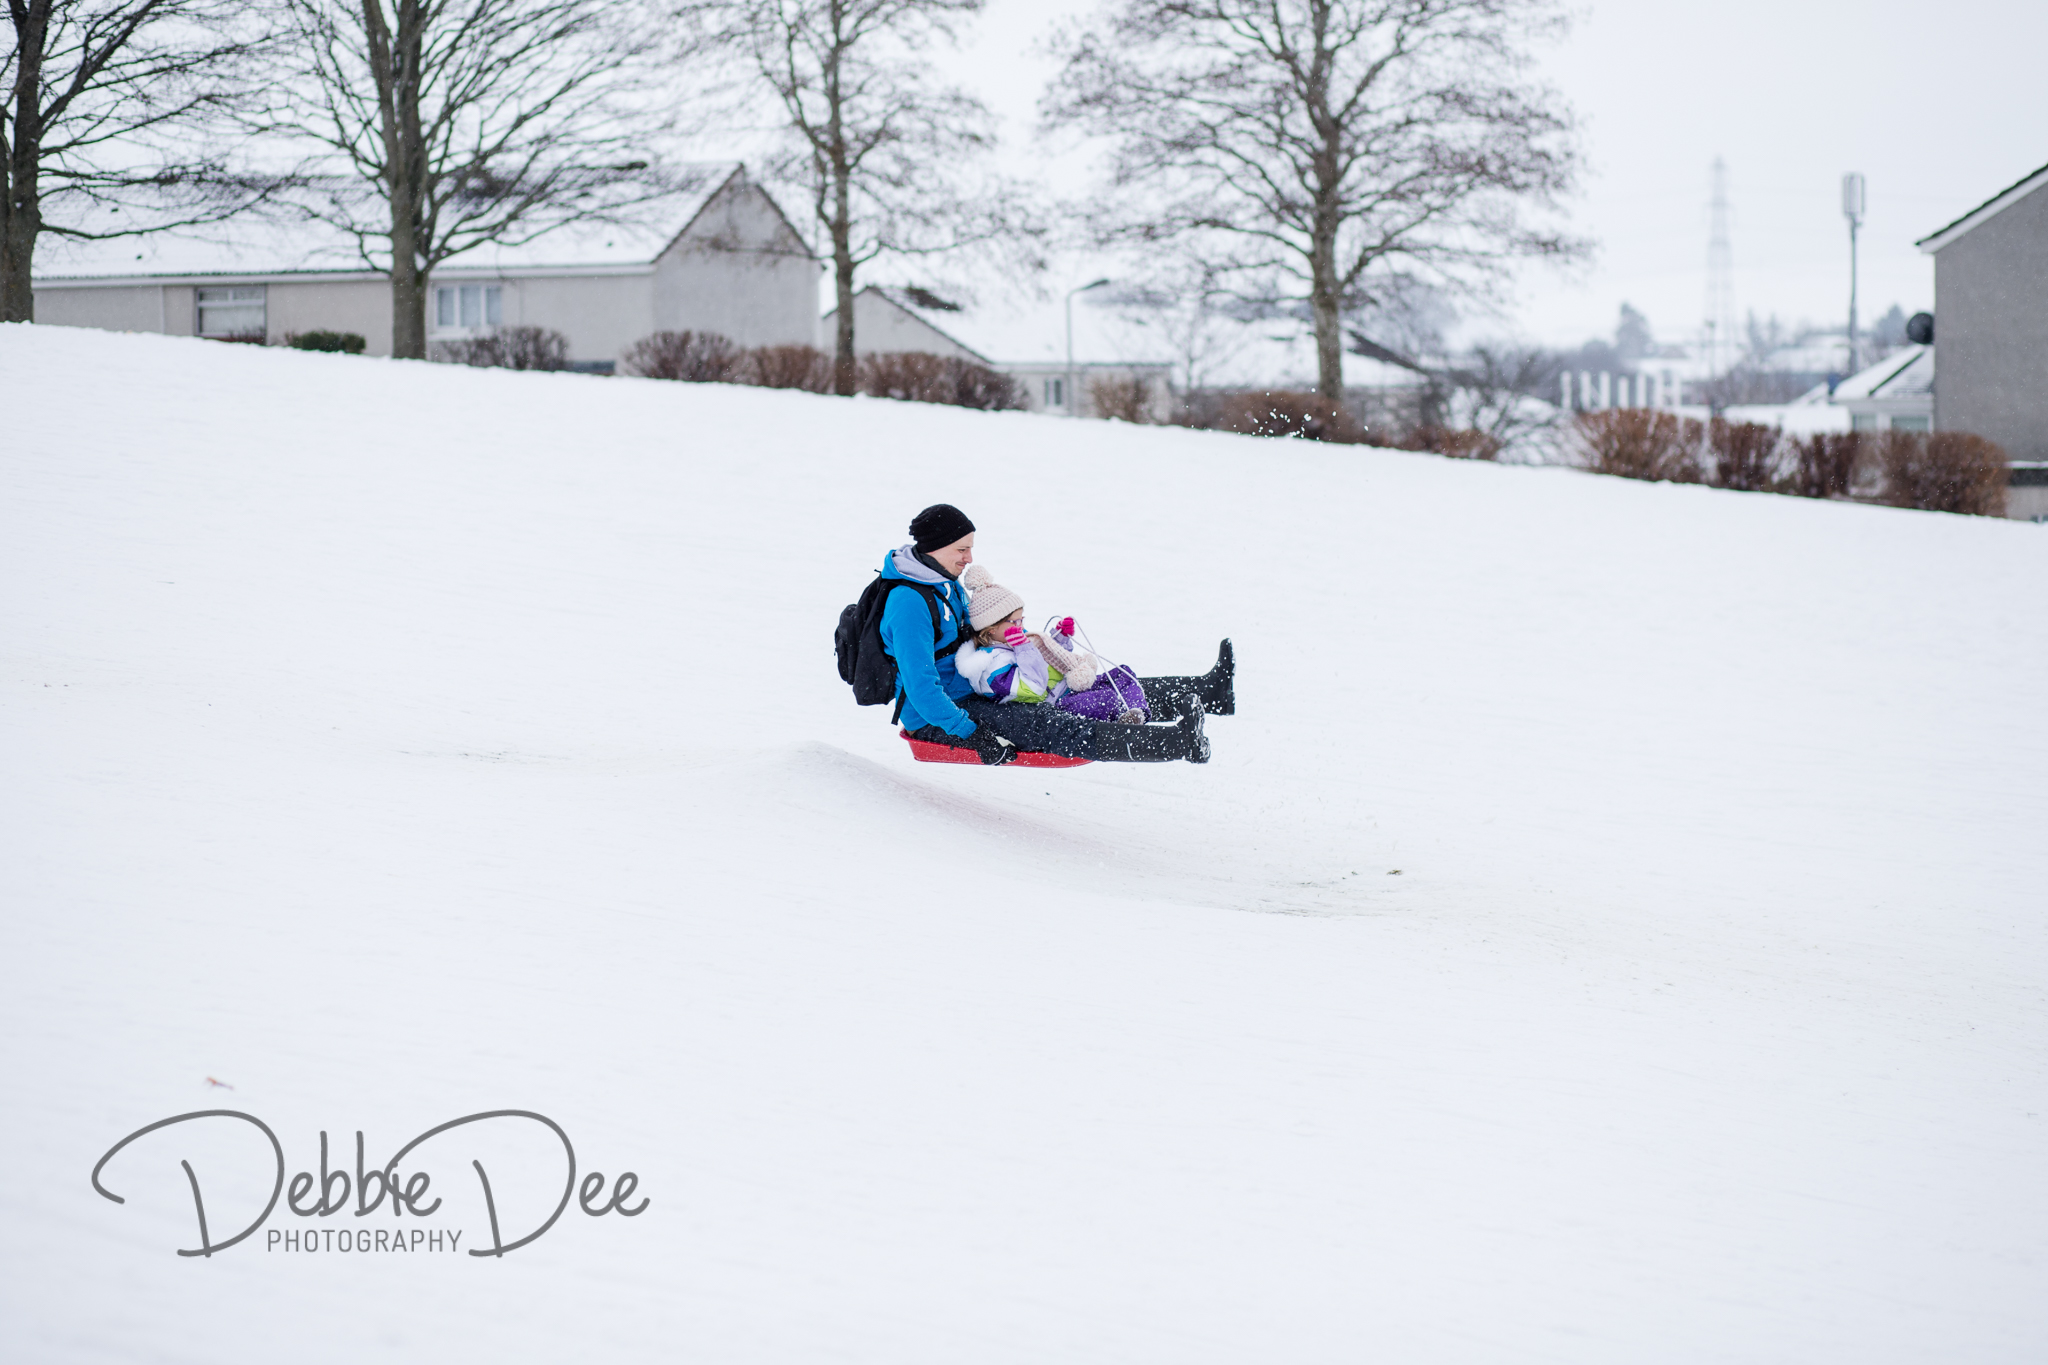 Dad and daughter sledging over ramp